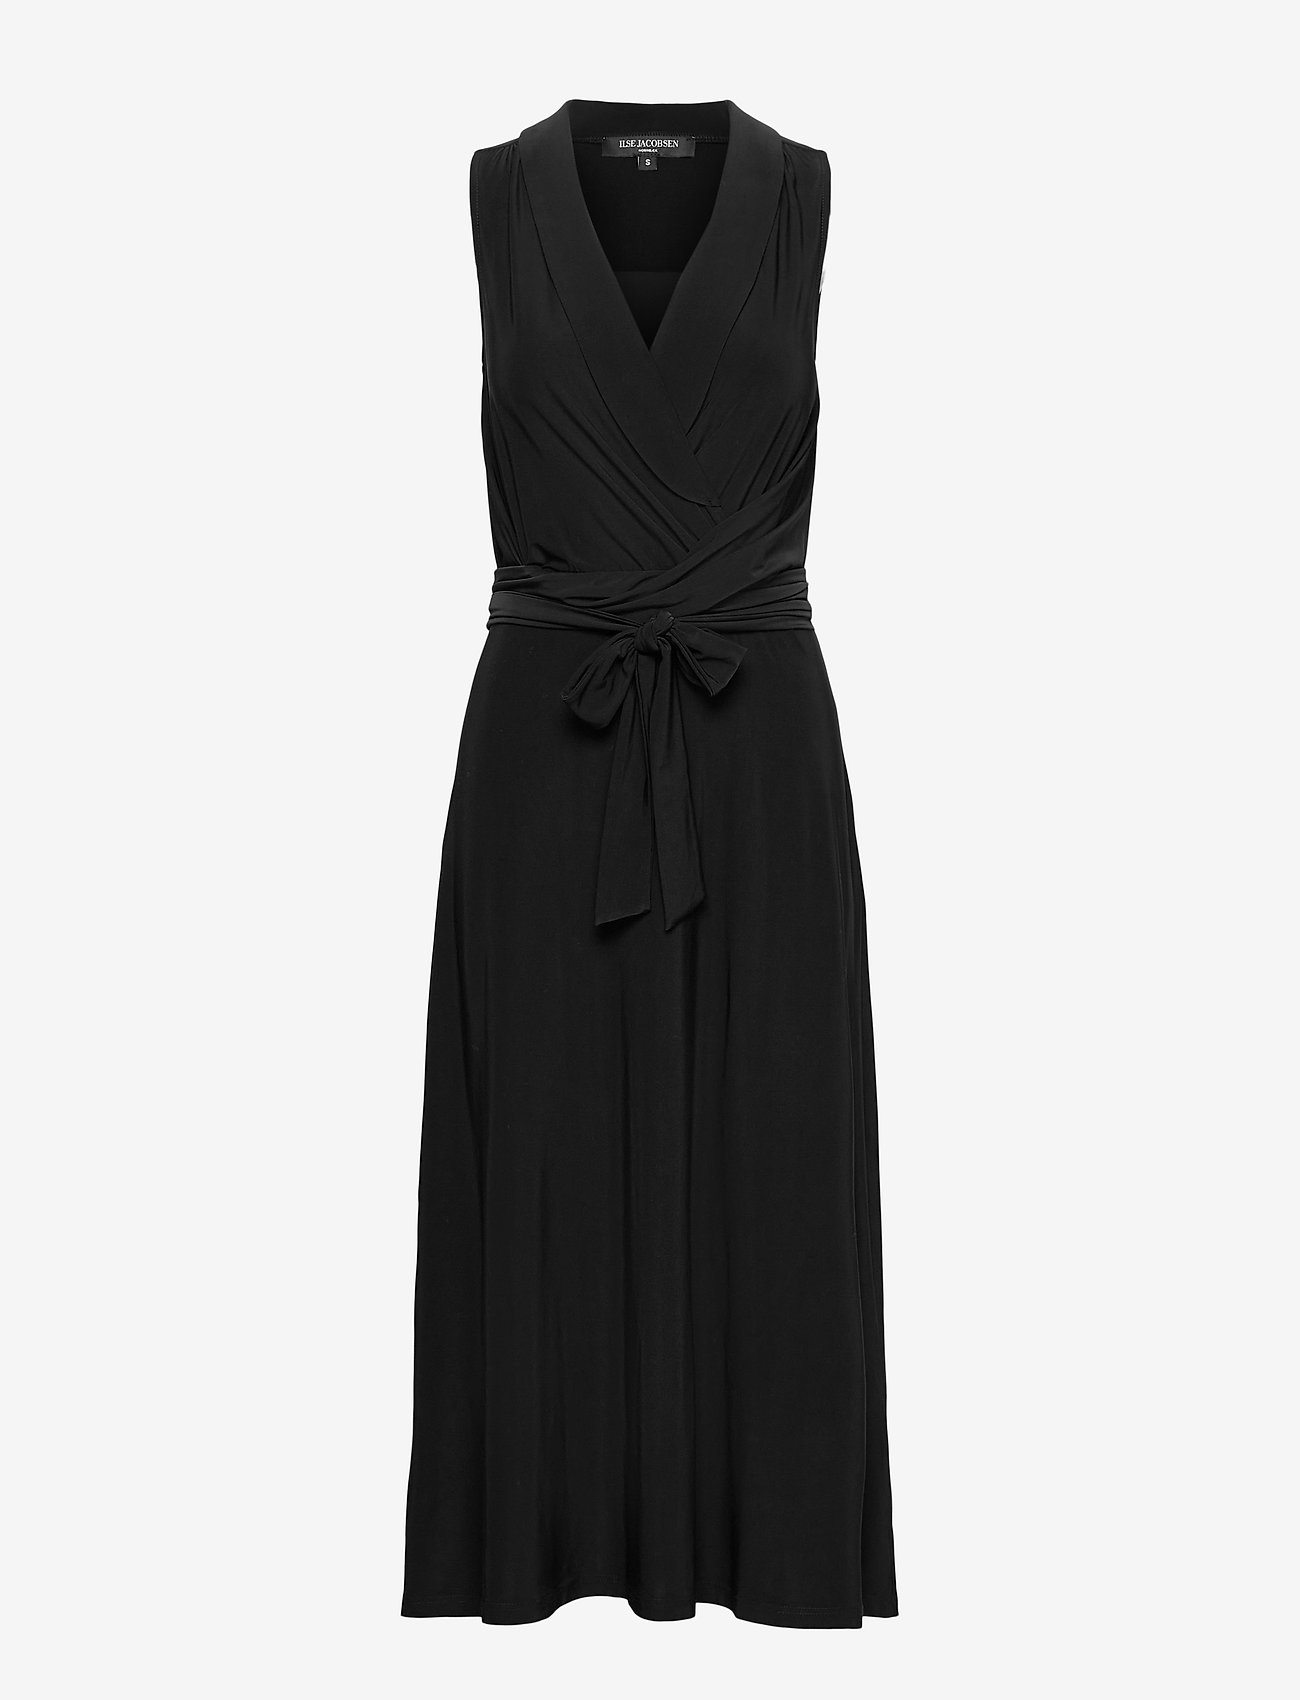 Ilse Jacobsen - Dress - cocktailkjoler - black - 0